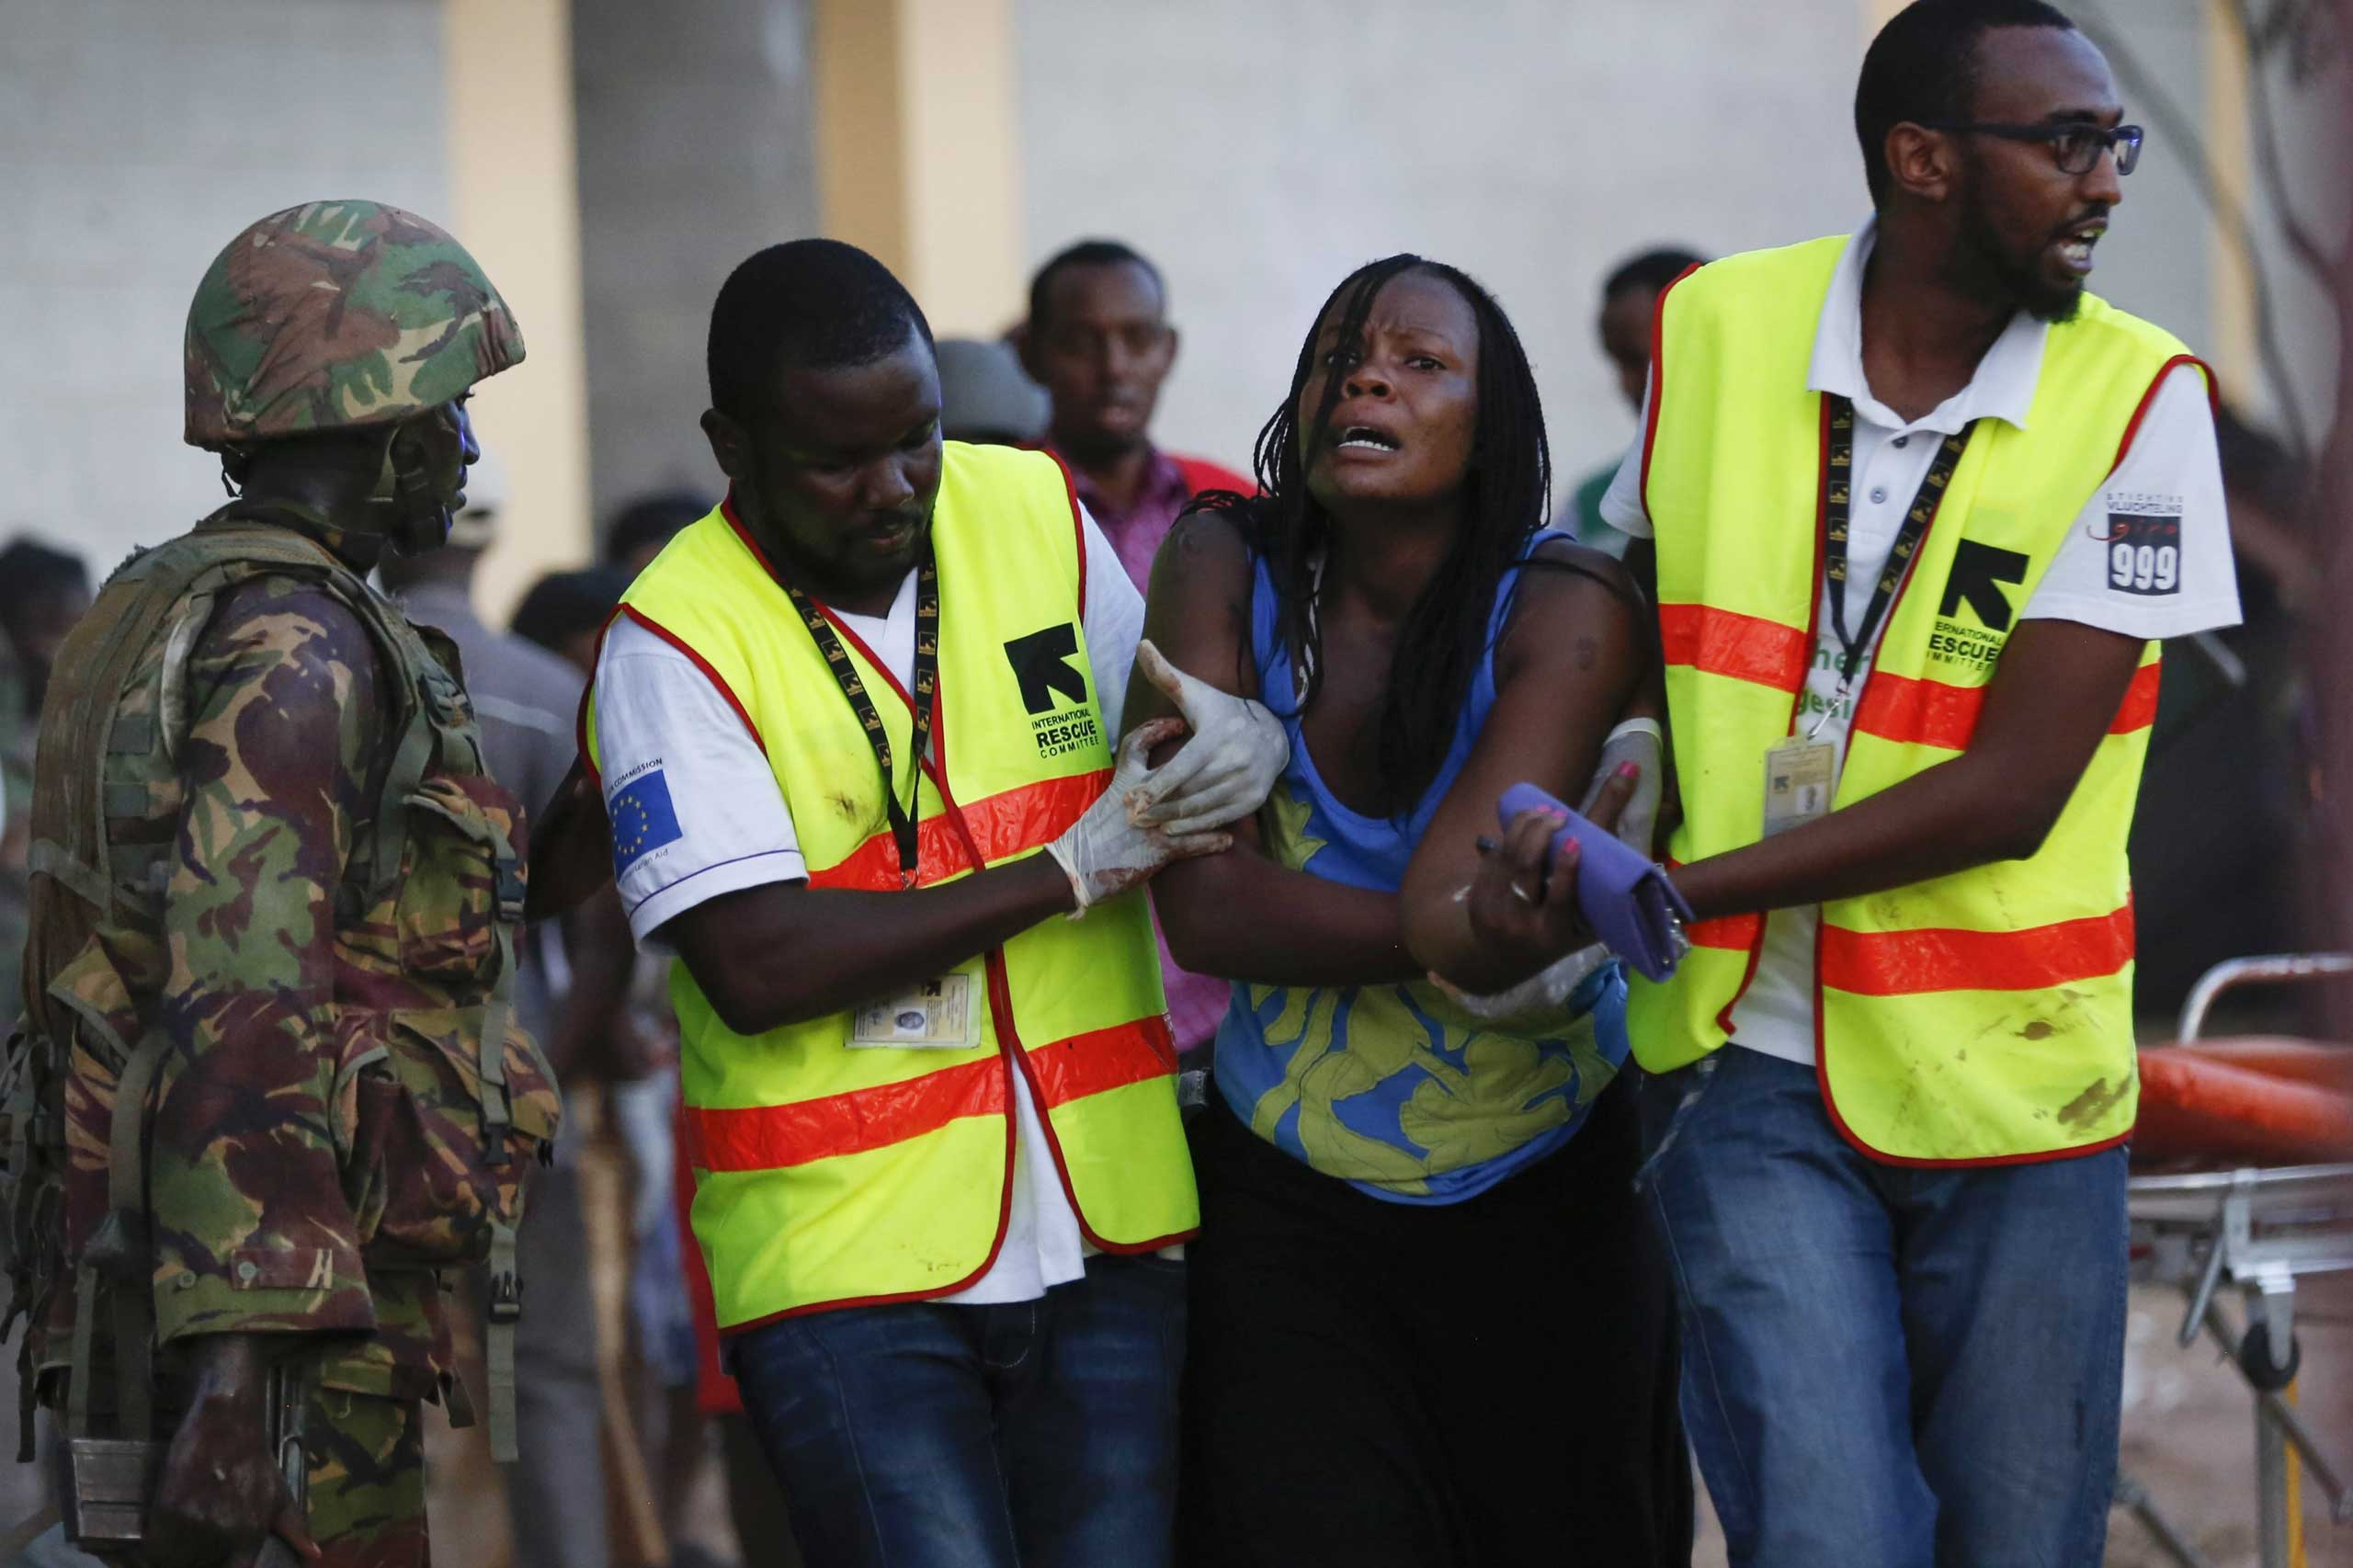 A woman reacts as she is rescued from where she had been held hostage after militants rampaged Garissa University College, in northeastern Kenya, on April 2, 2015.